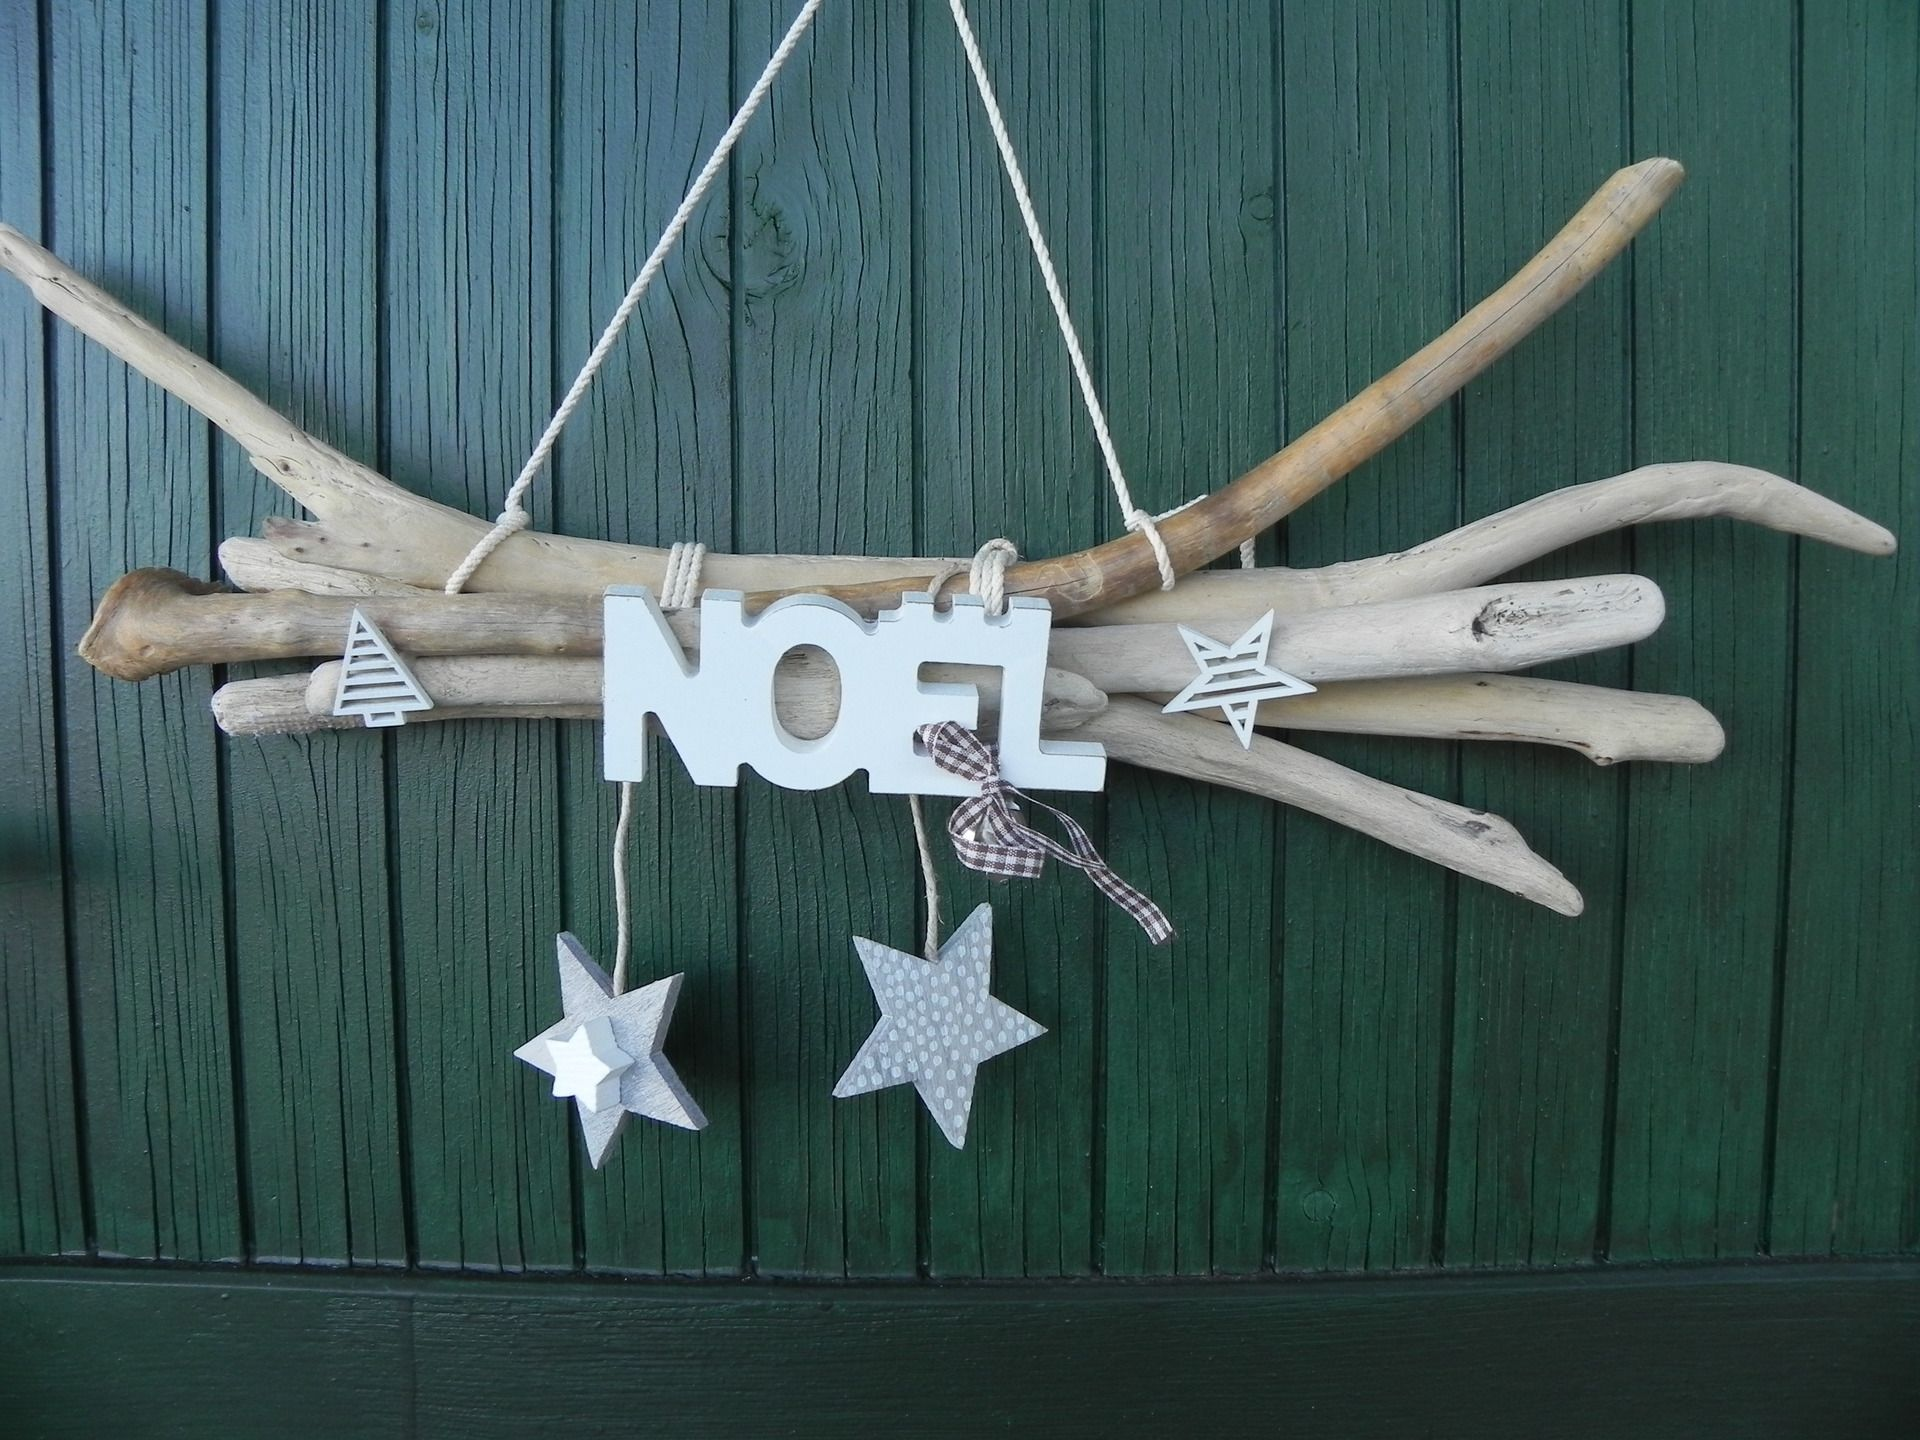 Decoration Murale Pour Noel Suspension De Porte En Bois Flotté Décorations Murales Par